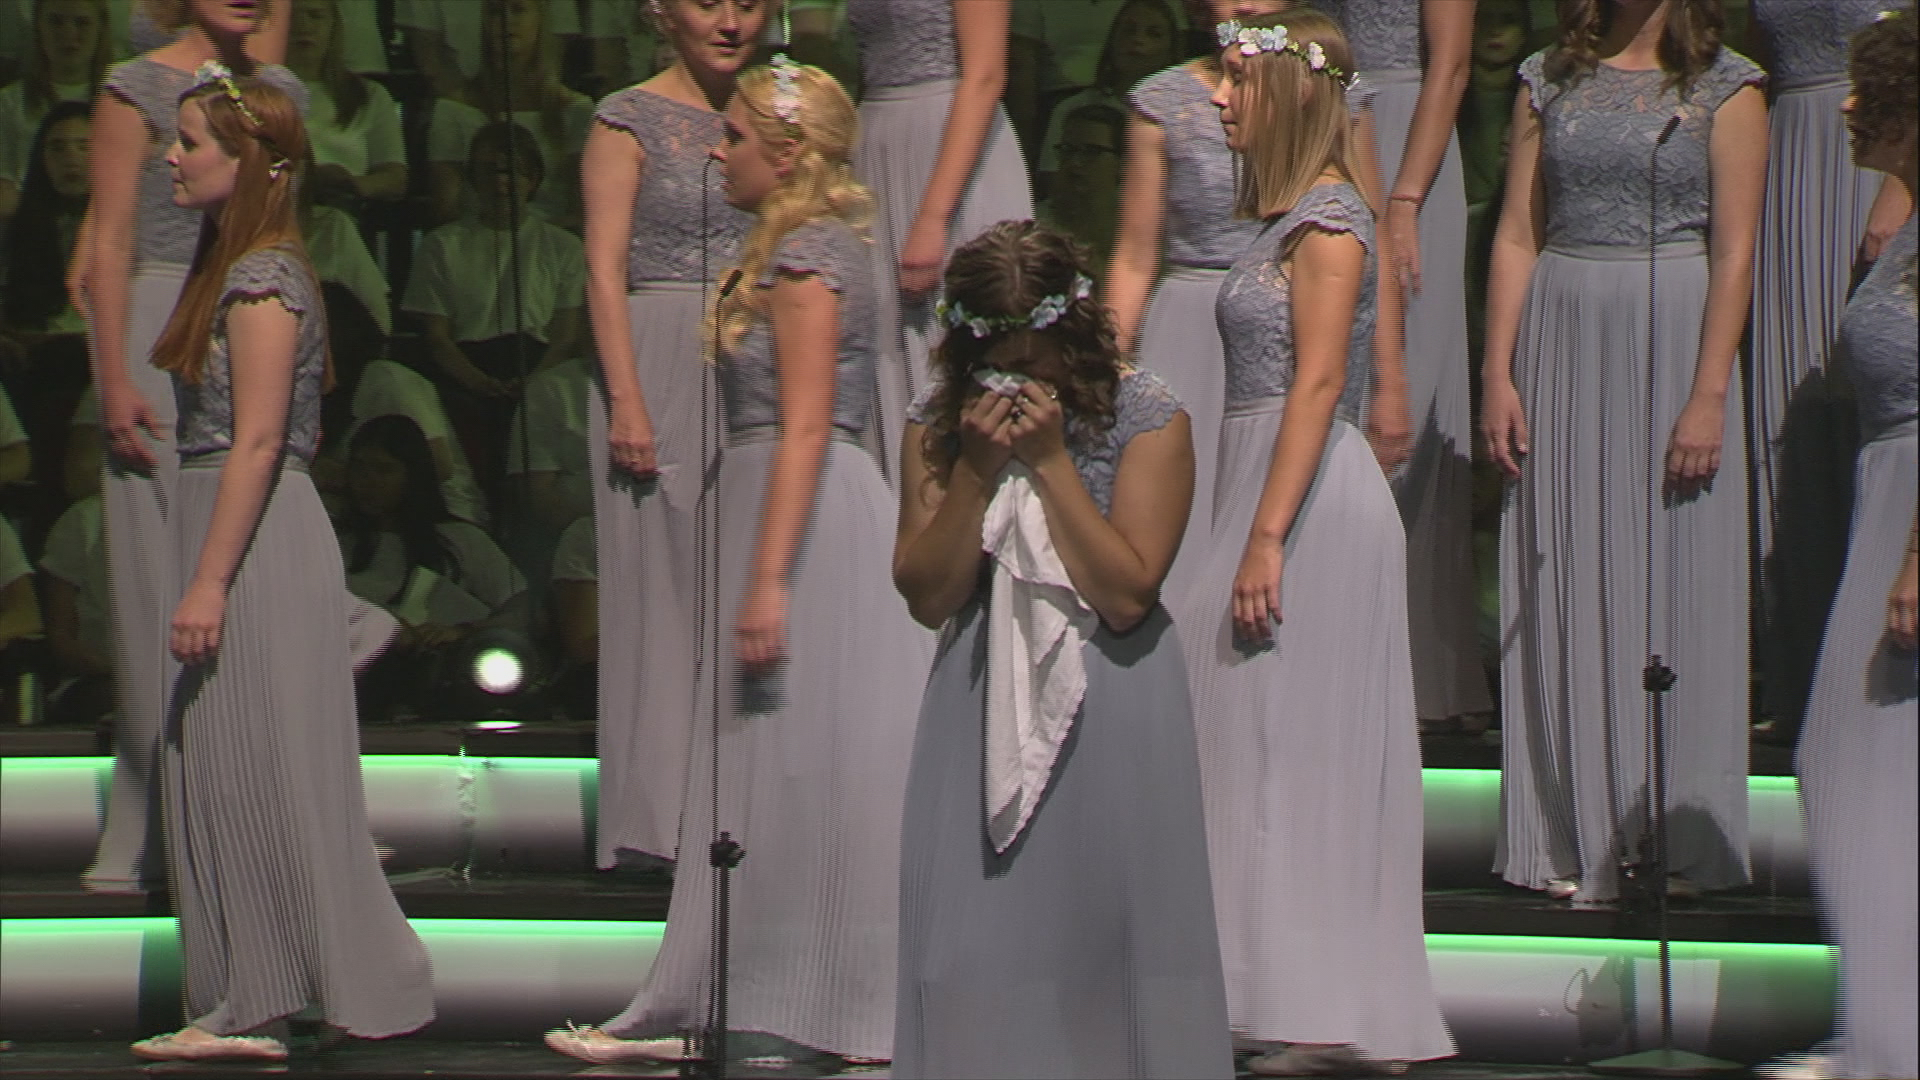 9420028_mgrn_eurovision_choir_raw-20.52.03.21.jpeg